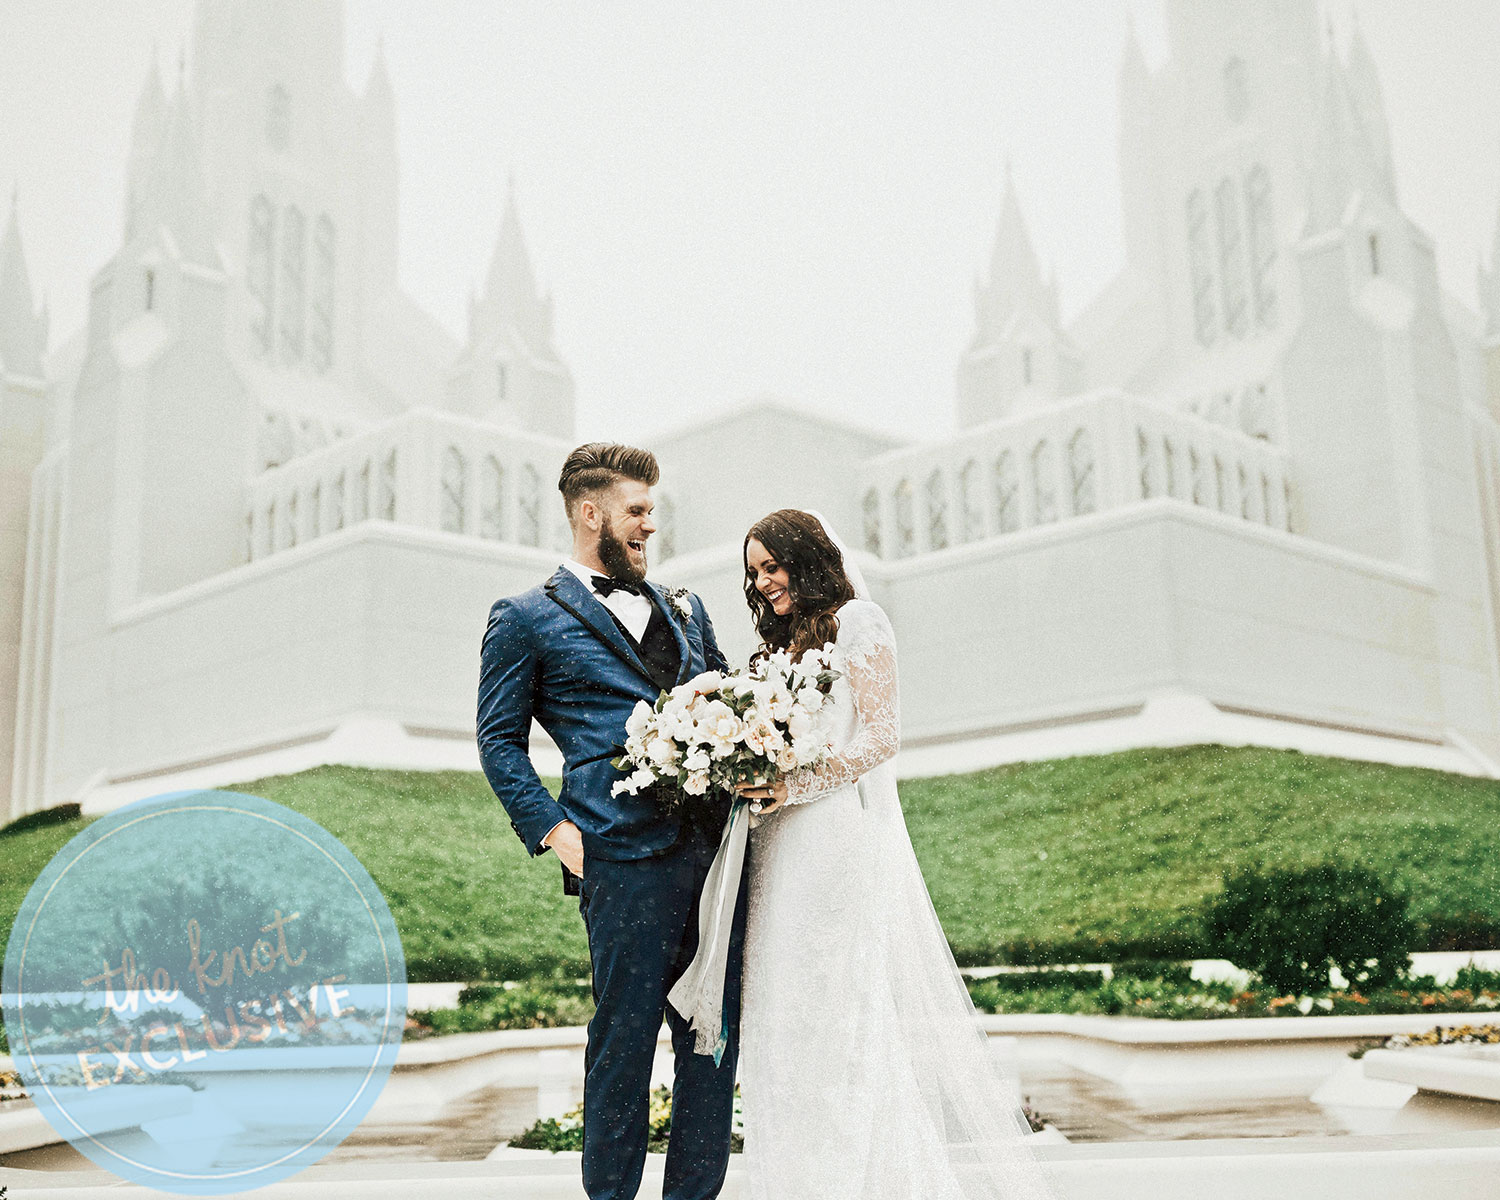 Bryce-Harper-Wedding-13.jpg